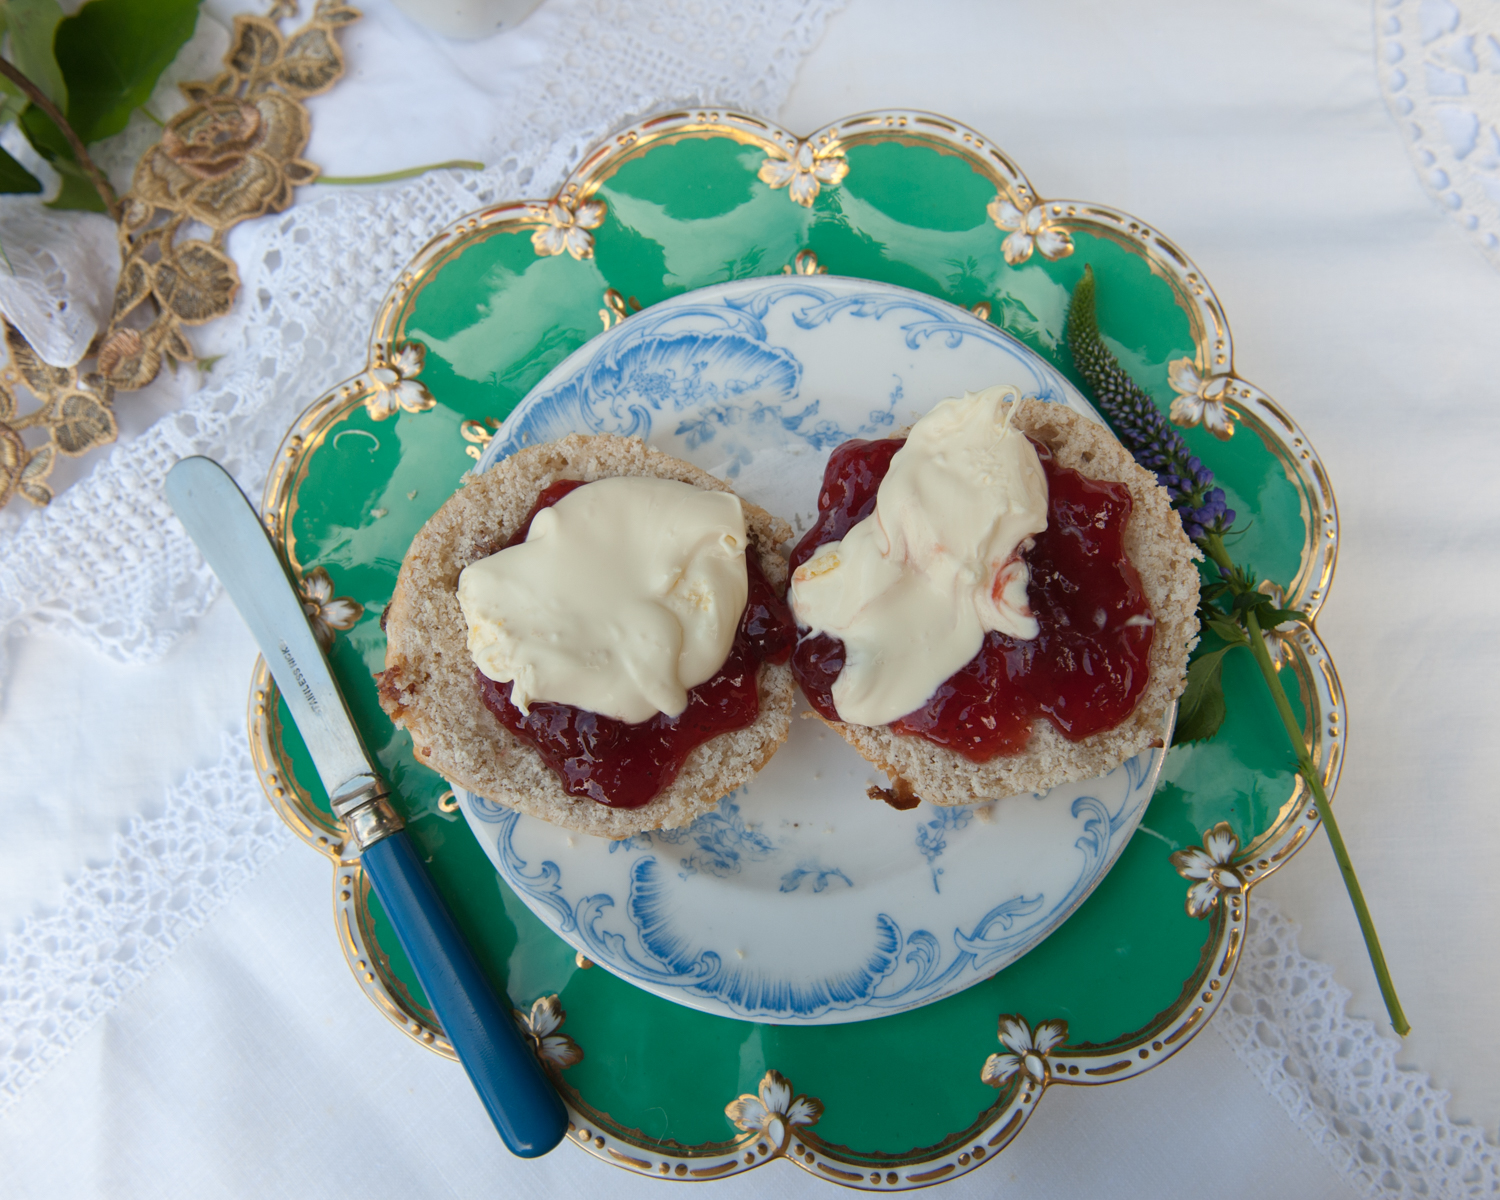 Vintage saucers and cream tea.